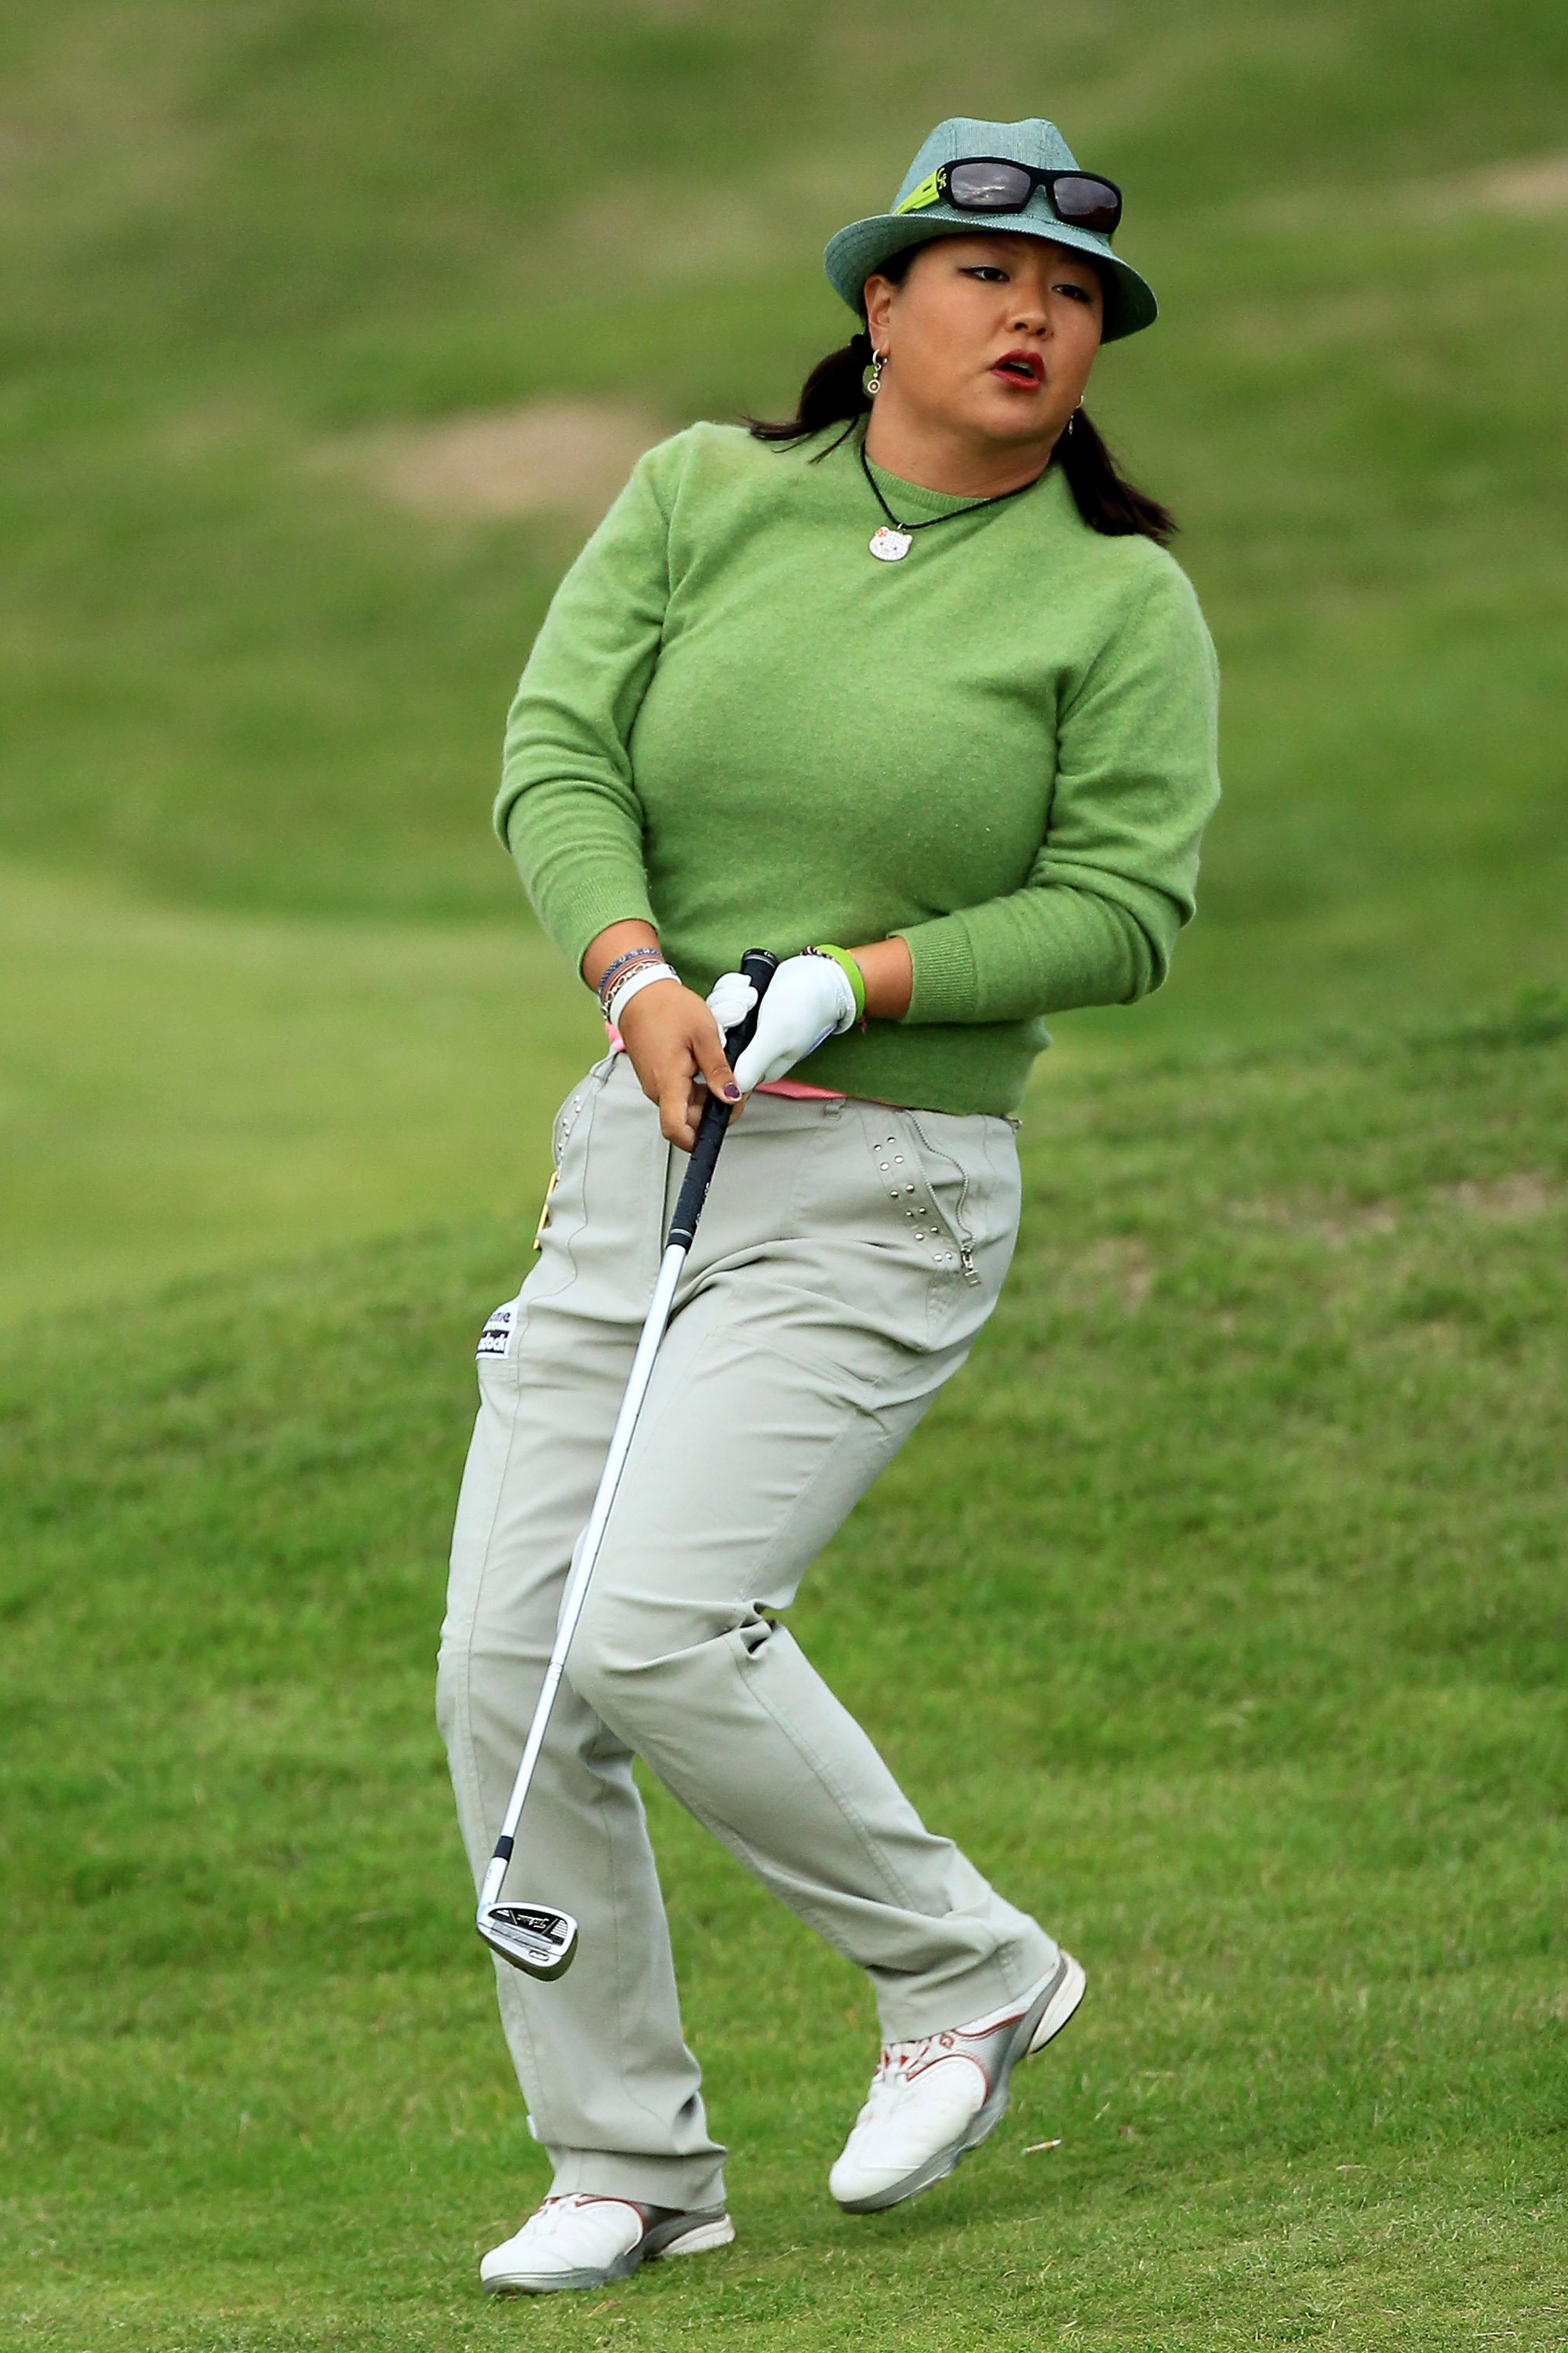 Christina Kim reacts during Round 2 of the Ricoh Women's British Open.